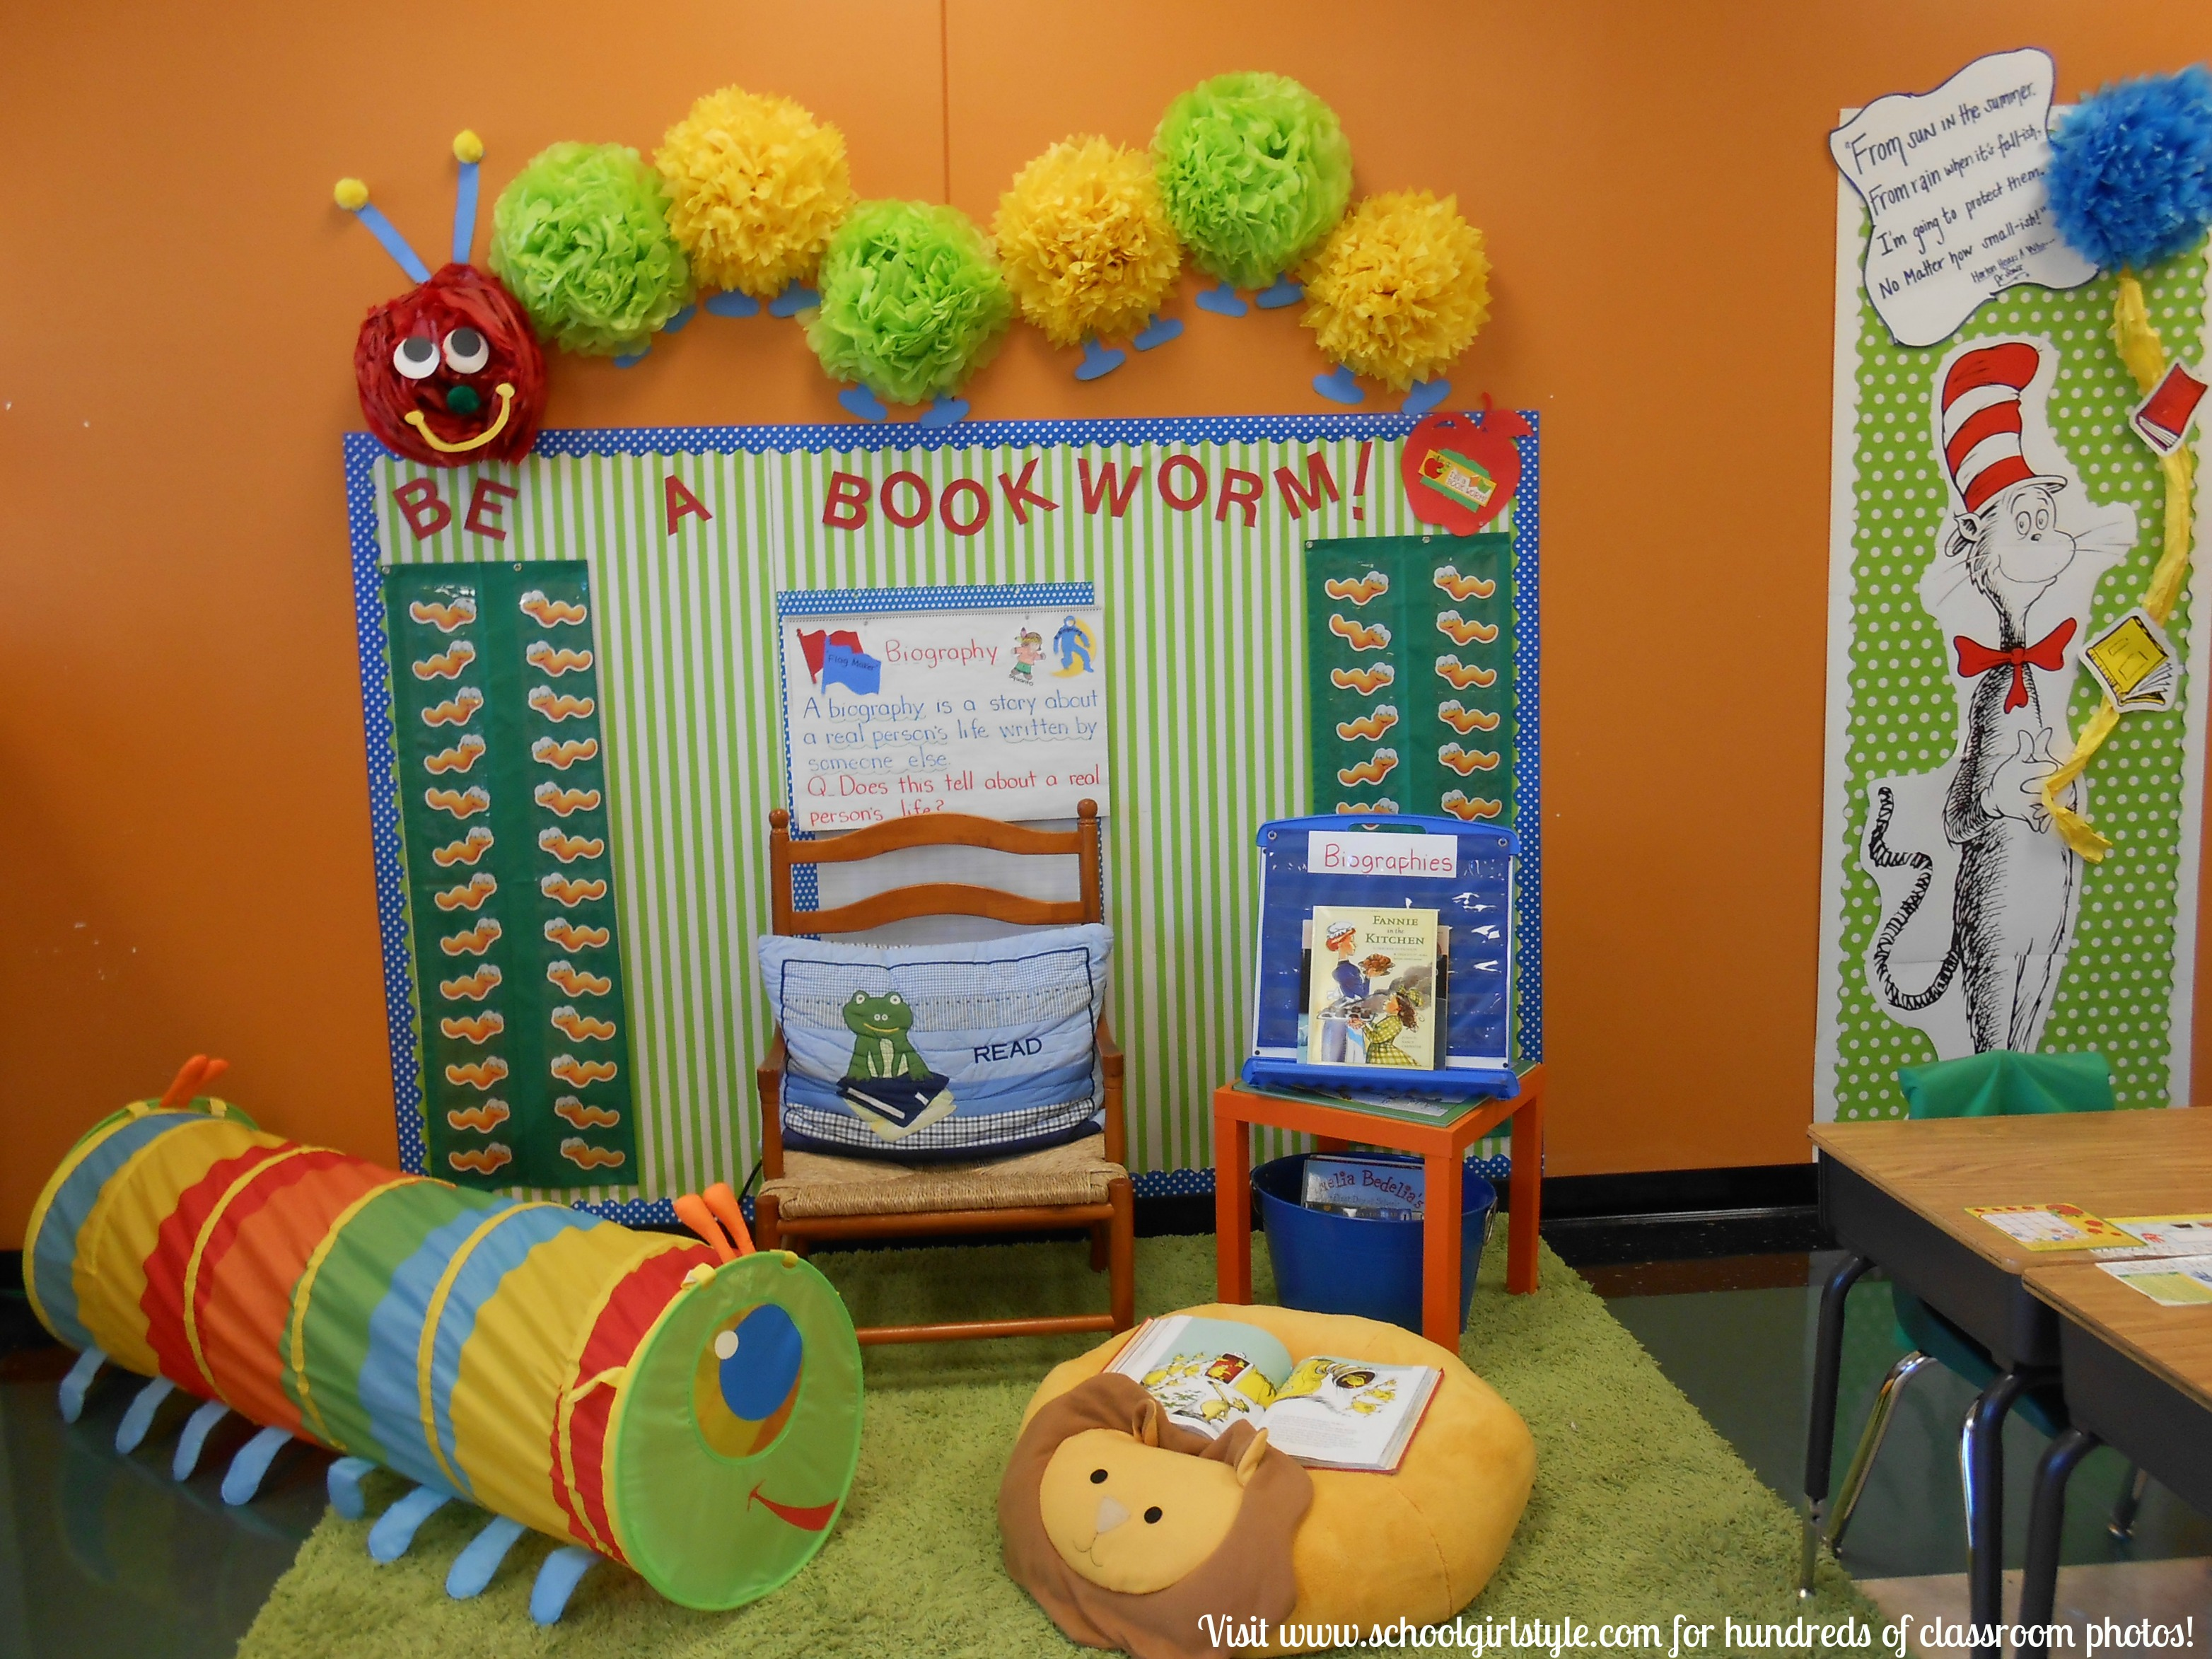 Classroom Decoration Inspiration ~ Cute classroom inspiration angie sneathern memphis tn